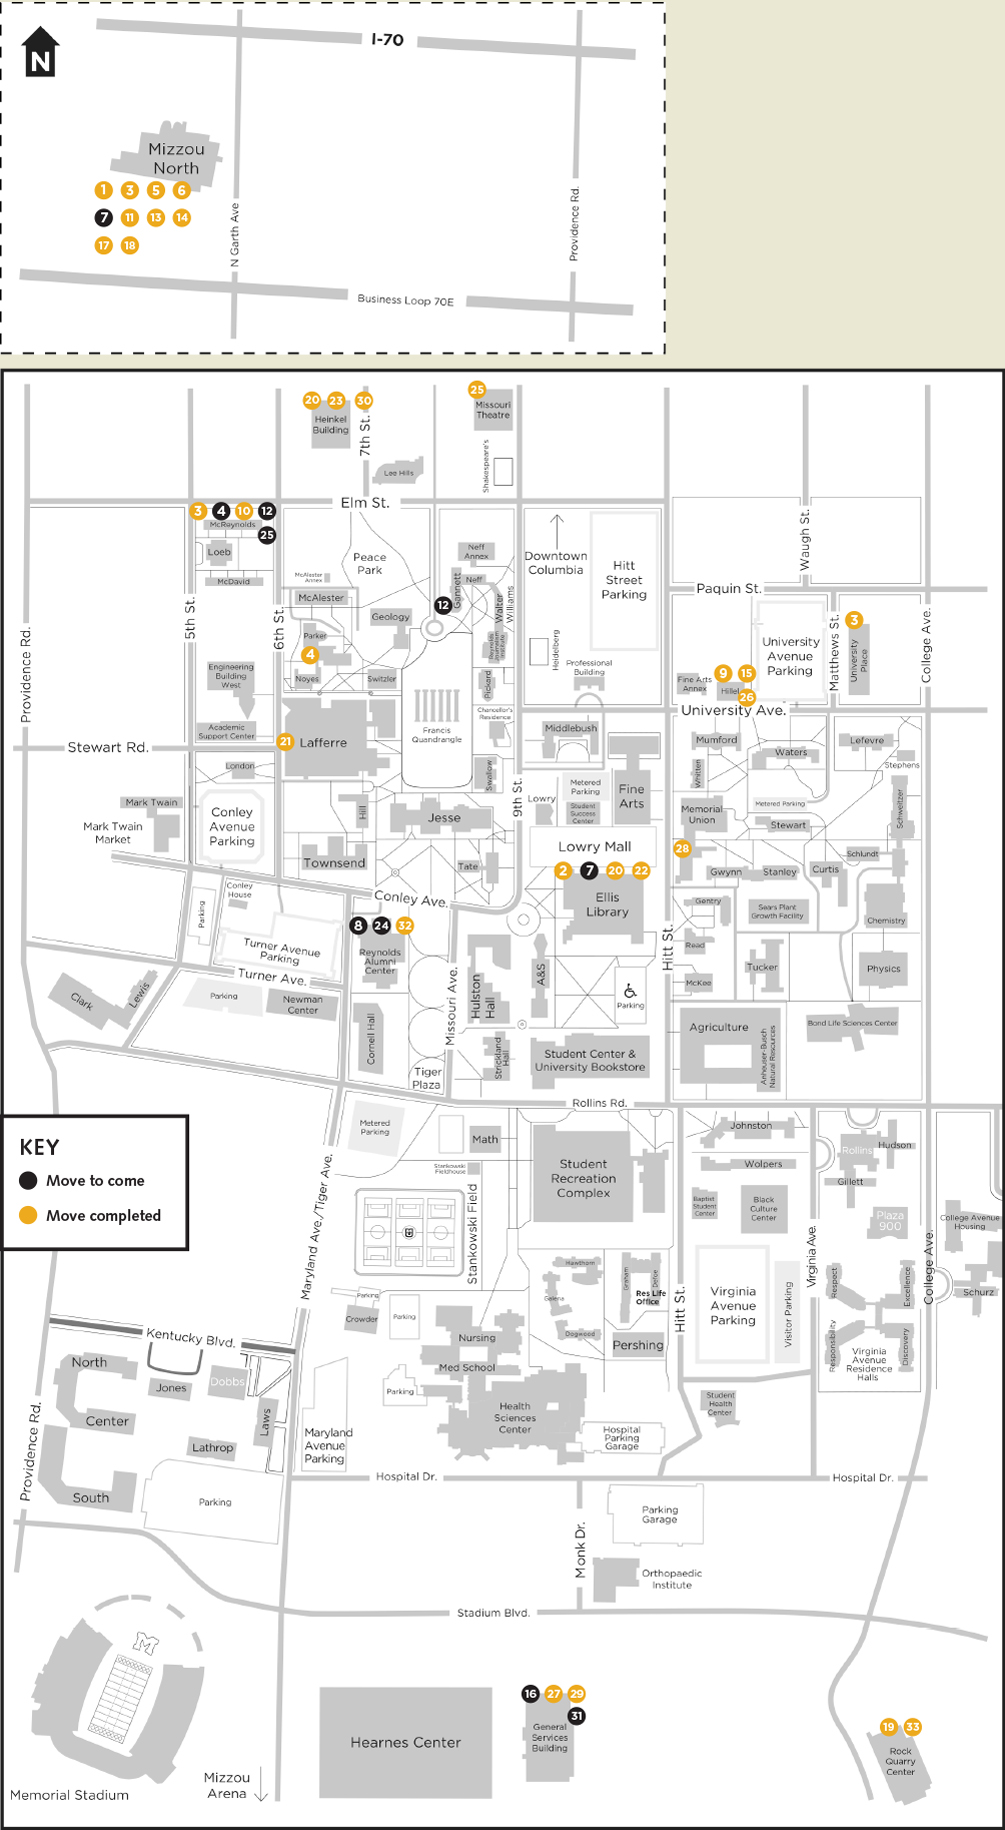 mapping new office locations mizzou weekly university of missouri